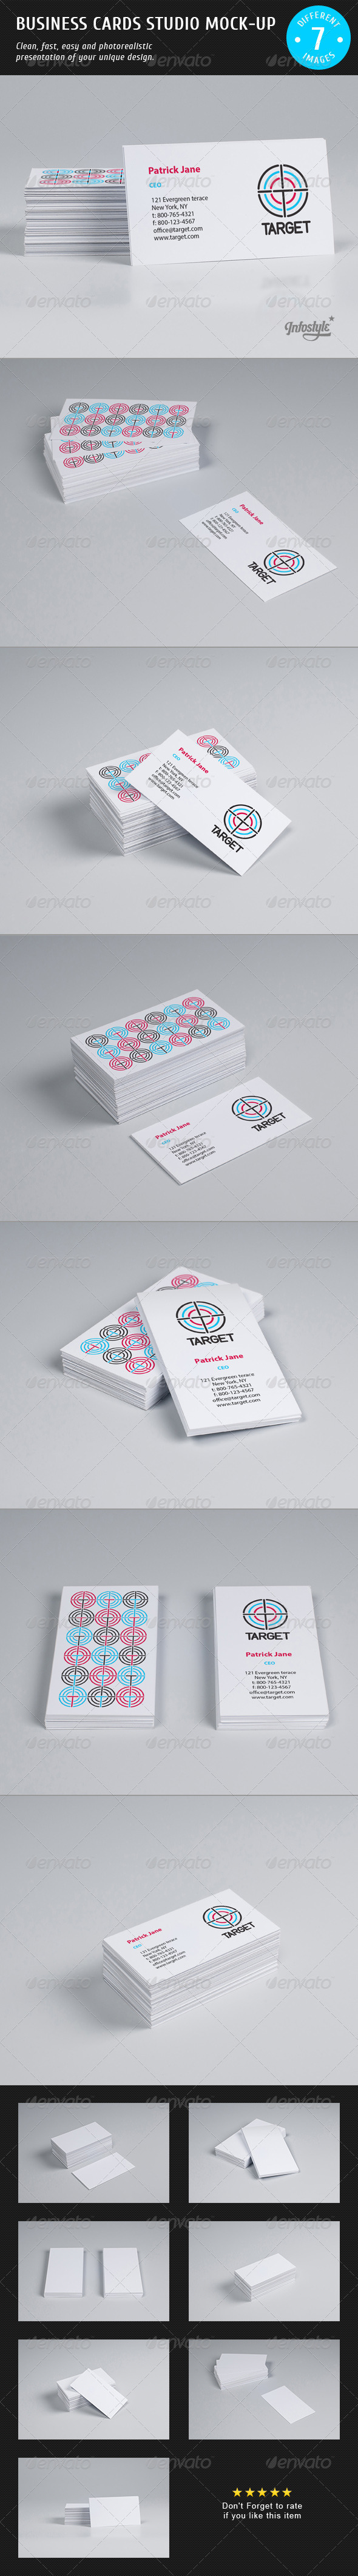 GraphicRiver Business Cards Studio Mock-up 3892218